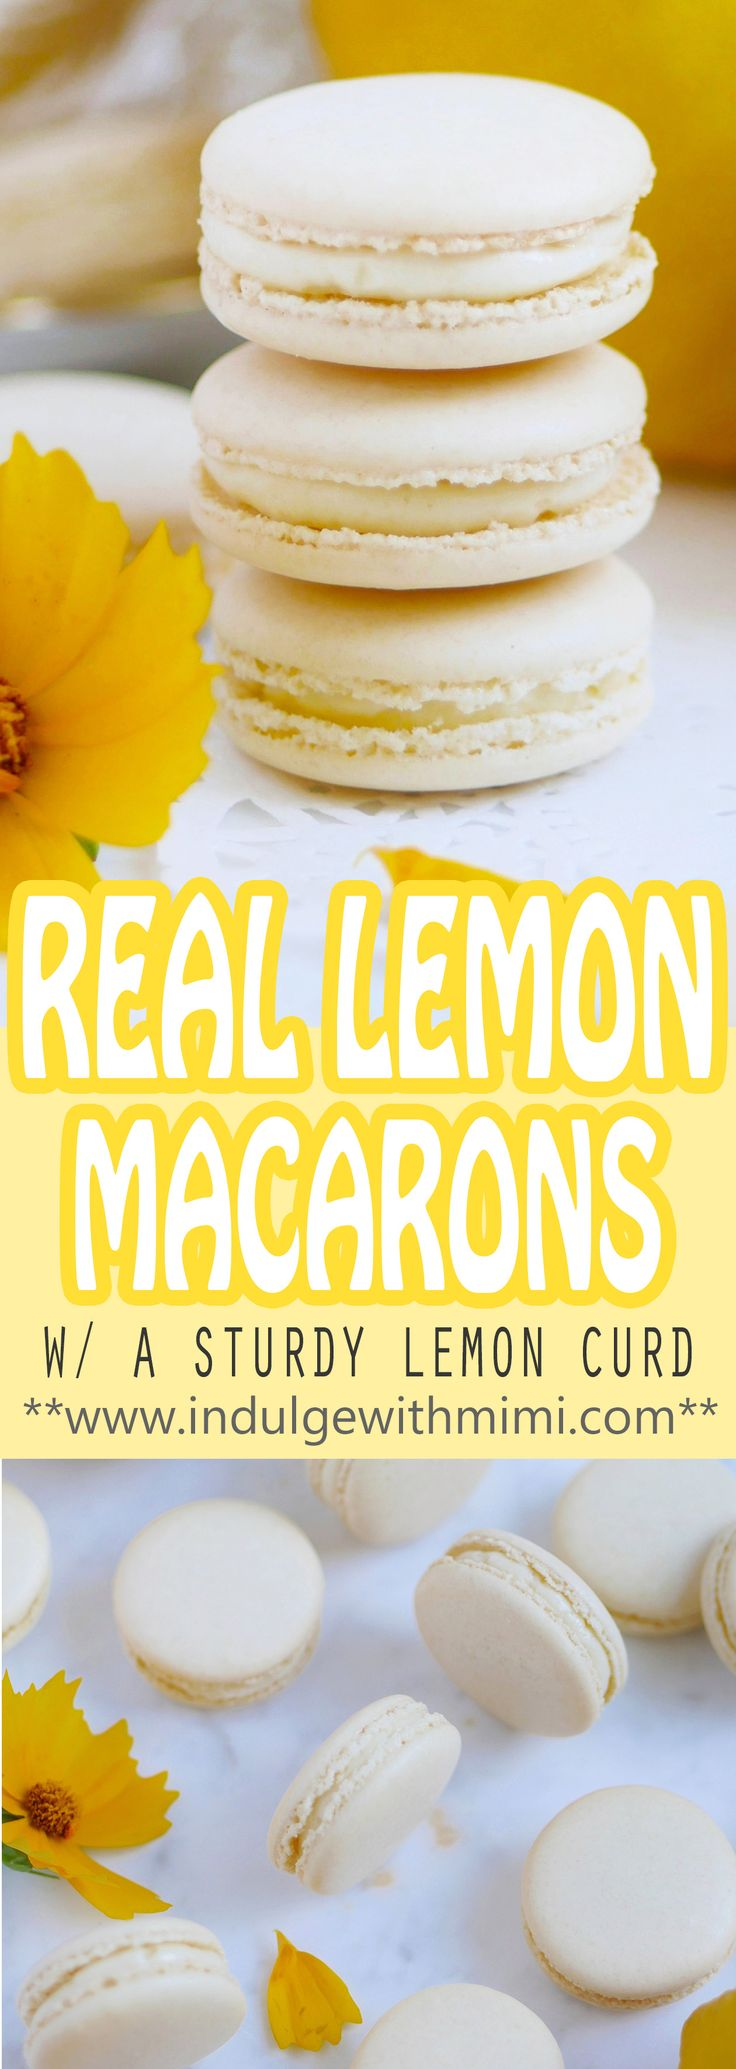 Macarons filled with a lemon cream and curd that won't make your macarons soggy. It's a mouthwatering and delicious macaron recipe made with REAL lemons - no artificial flavours.